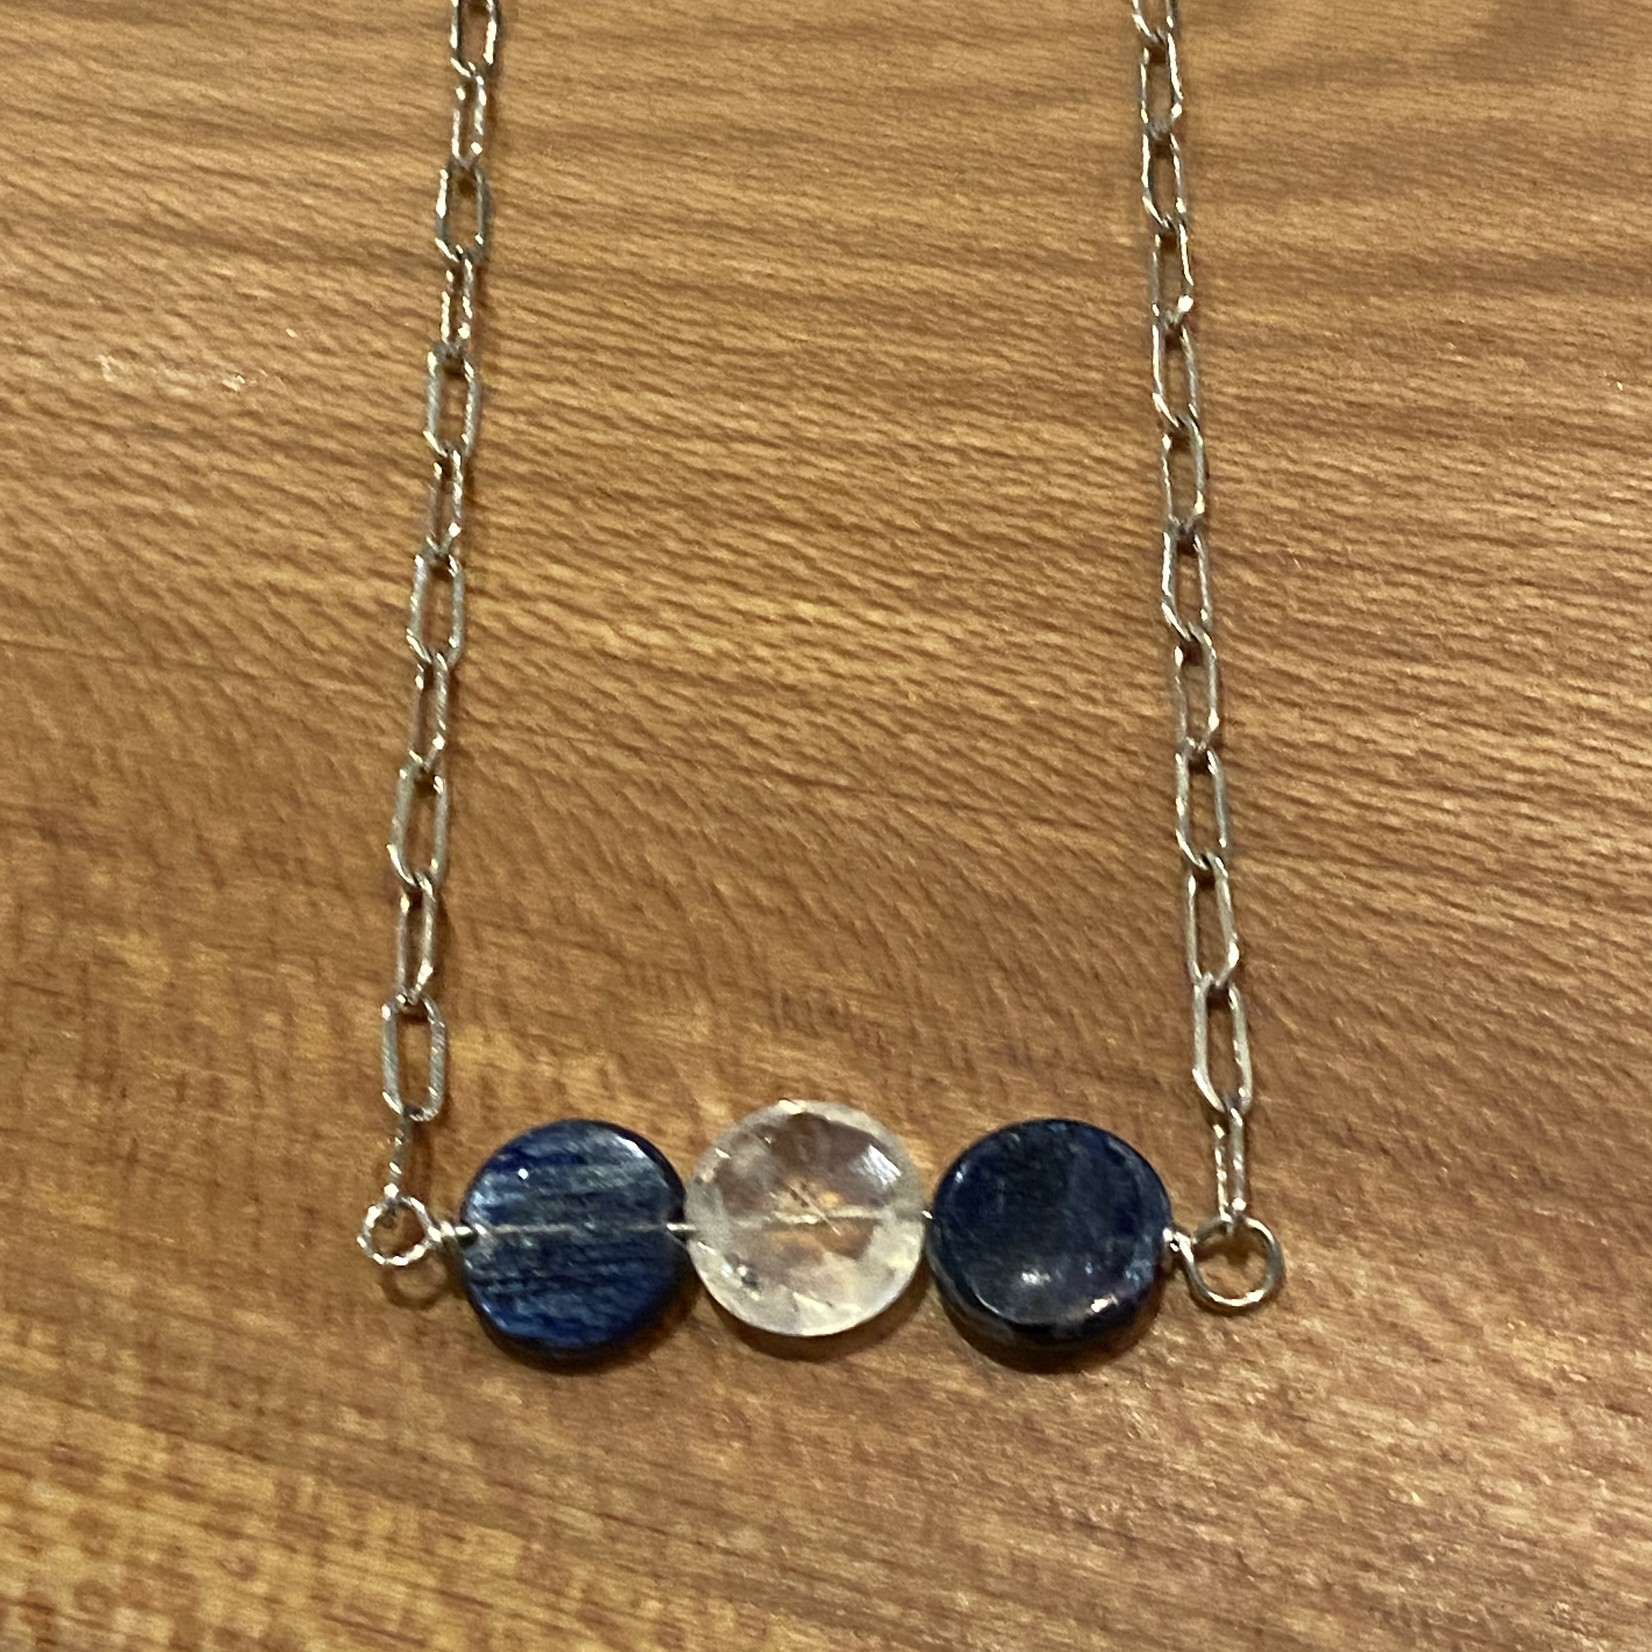 Handmade Necklace with rainbow moonstone and kyanite coins